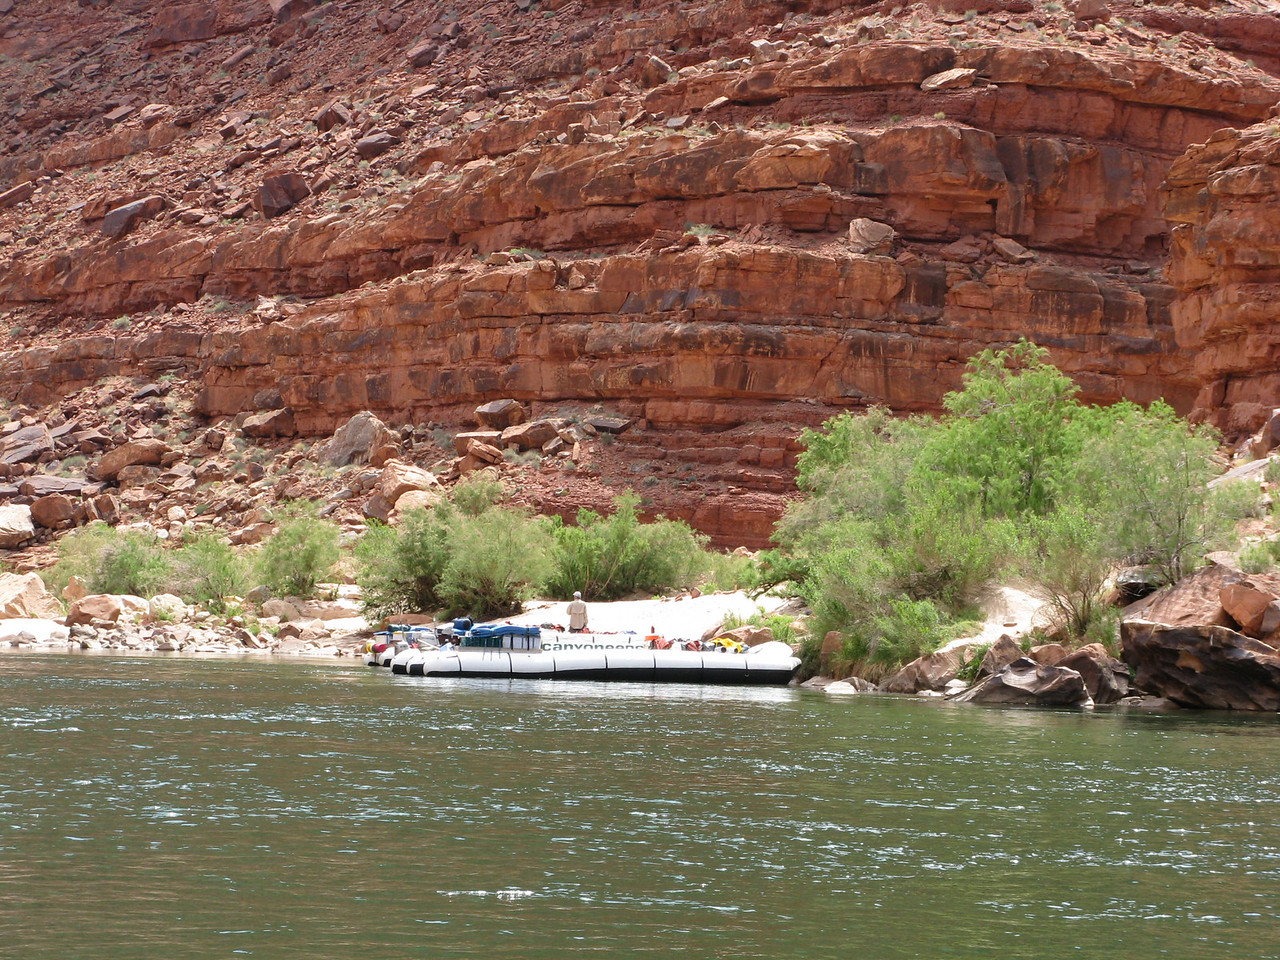 The rafts carrying guests on the 7-day, full canyon trip have stopped further down stream for lunch. We pass them while the rafts are tied to shore.